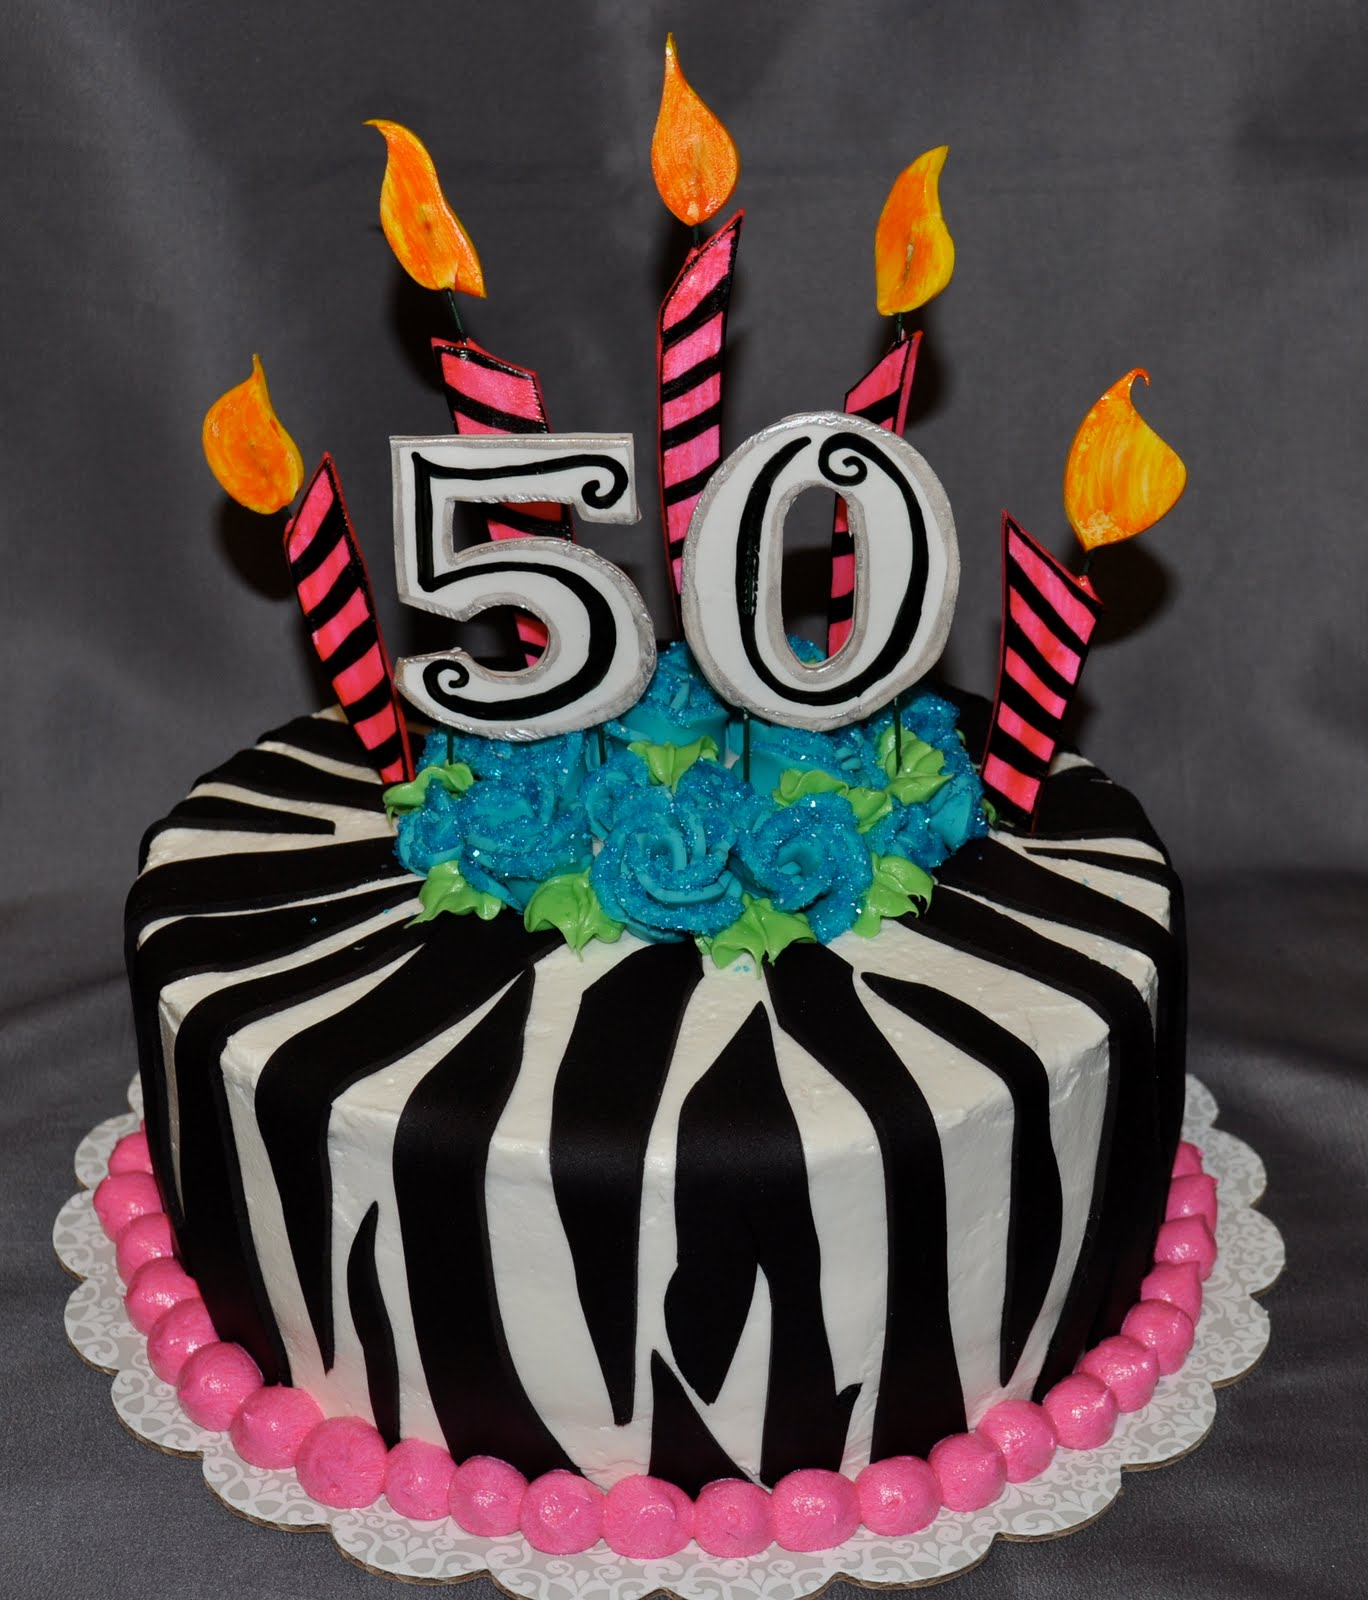 picture of birthday cake with 50 candles ; DSC_1291